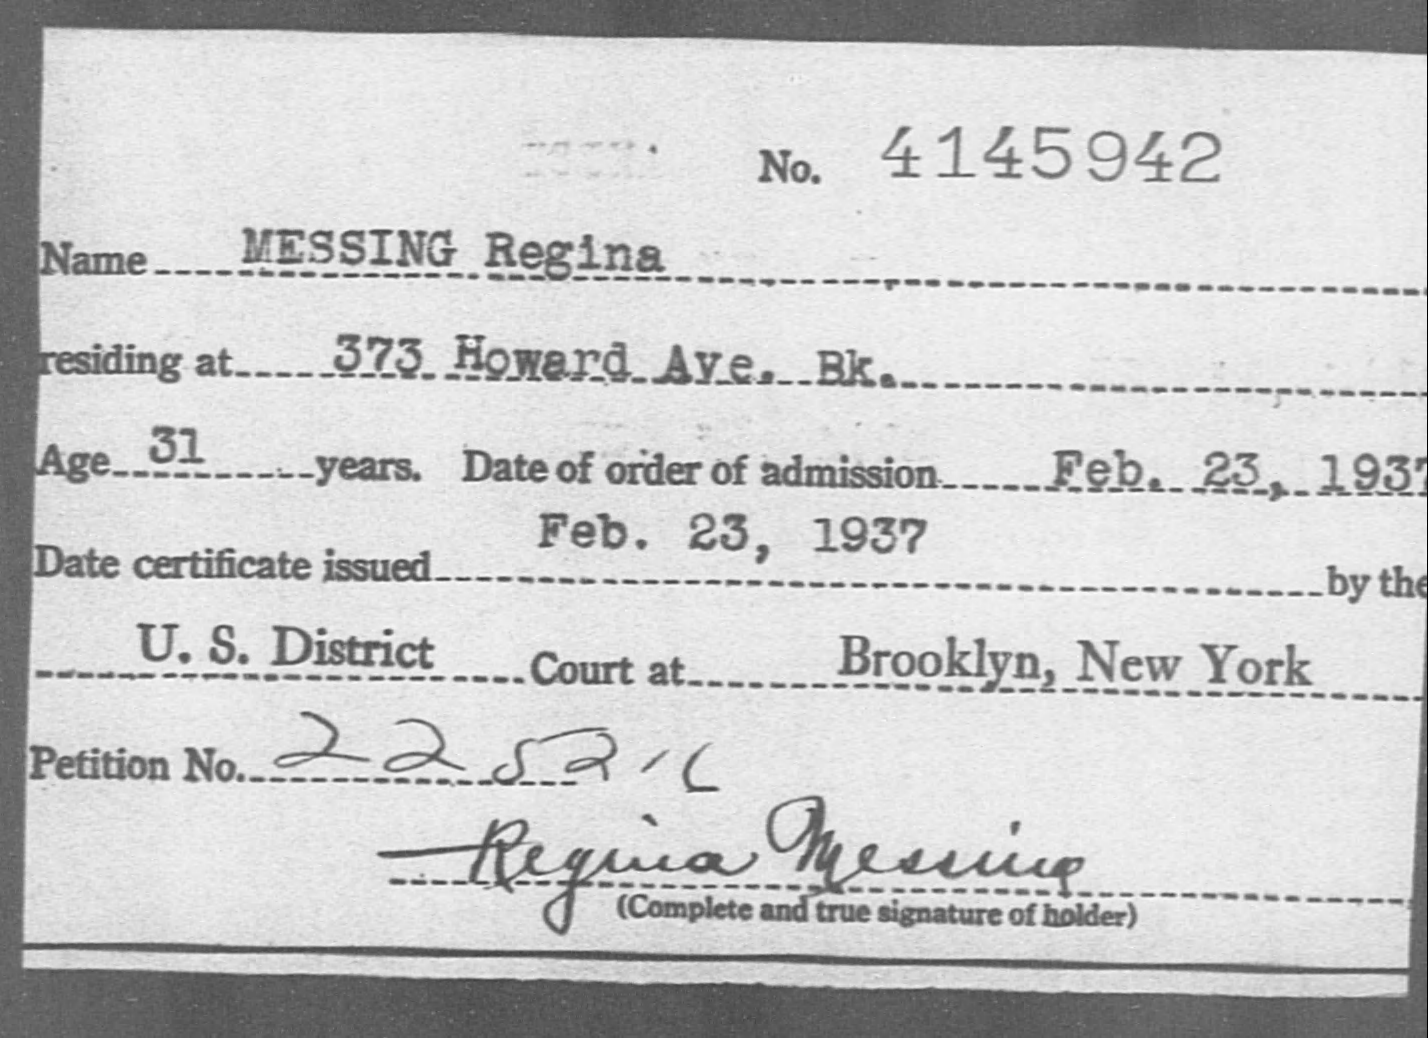 MESSING Regina - Born: [BLANK], Naturalized: 1937